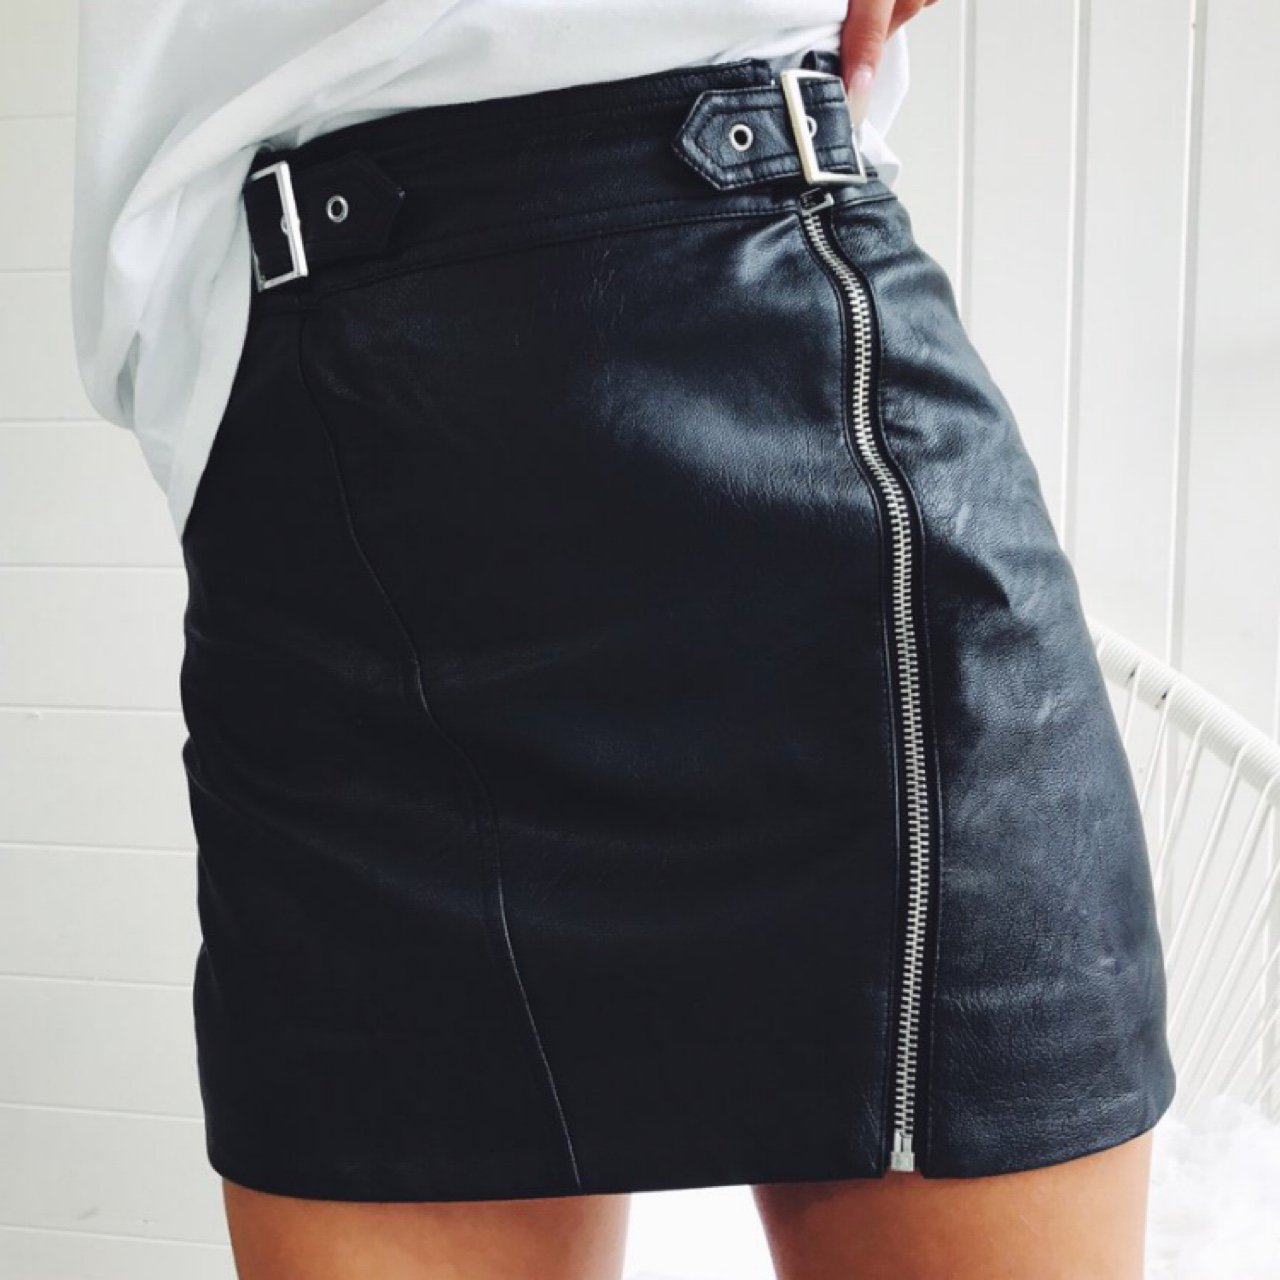 17ecfd75ba56 Topshop Faux Leather Skirt